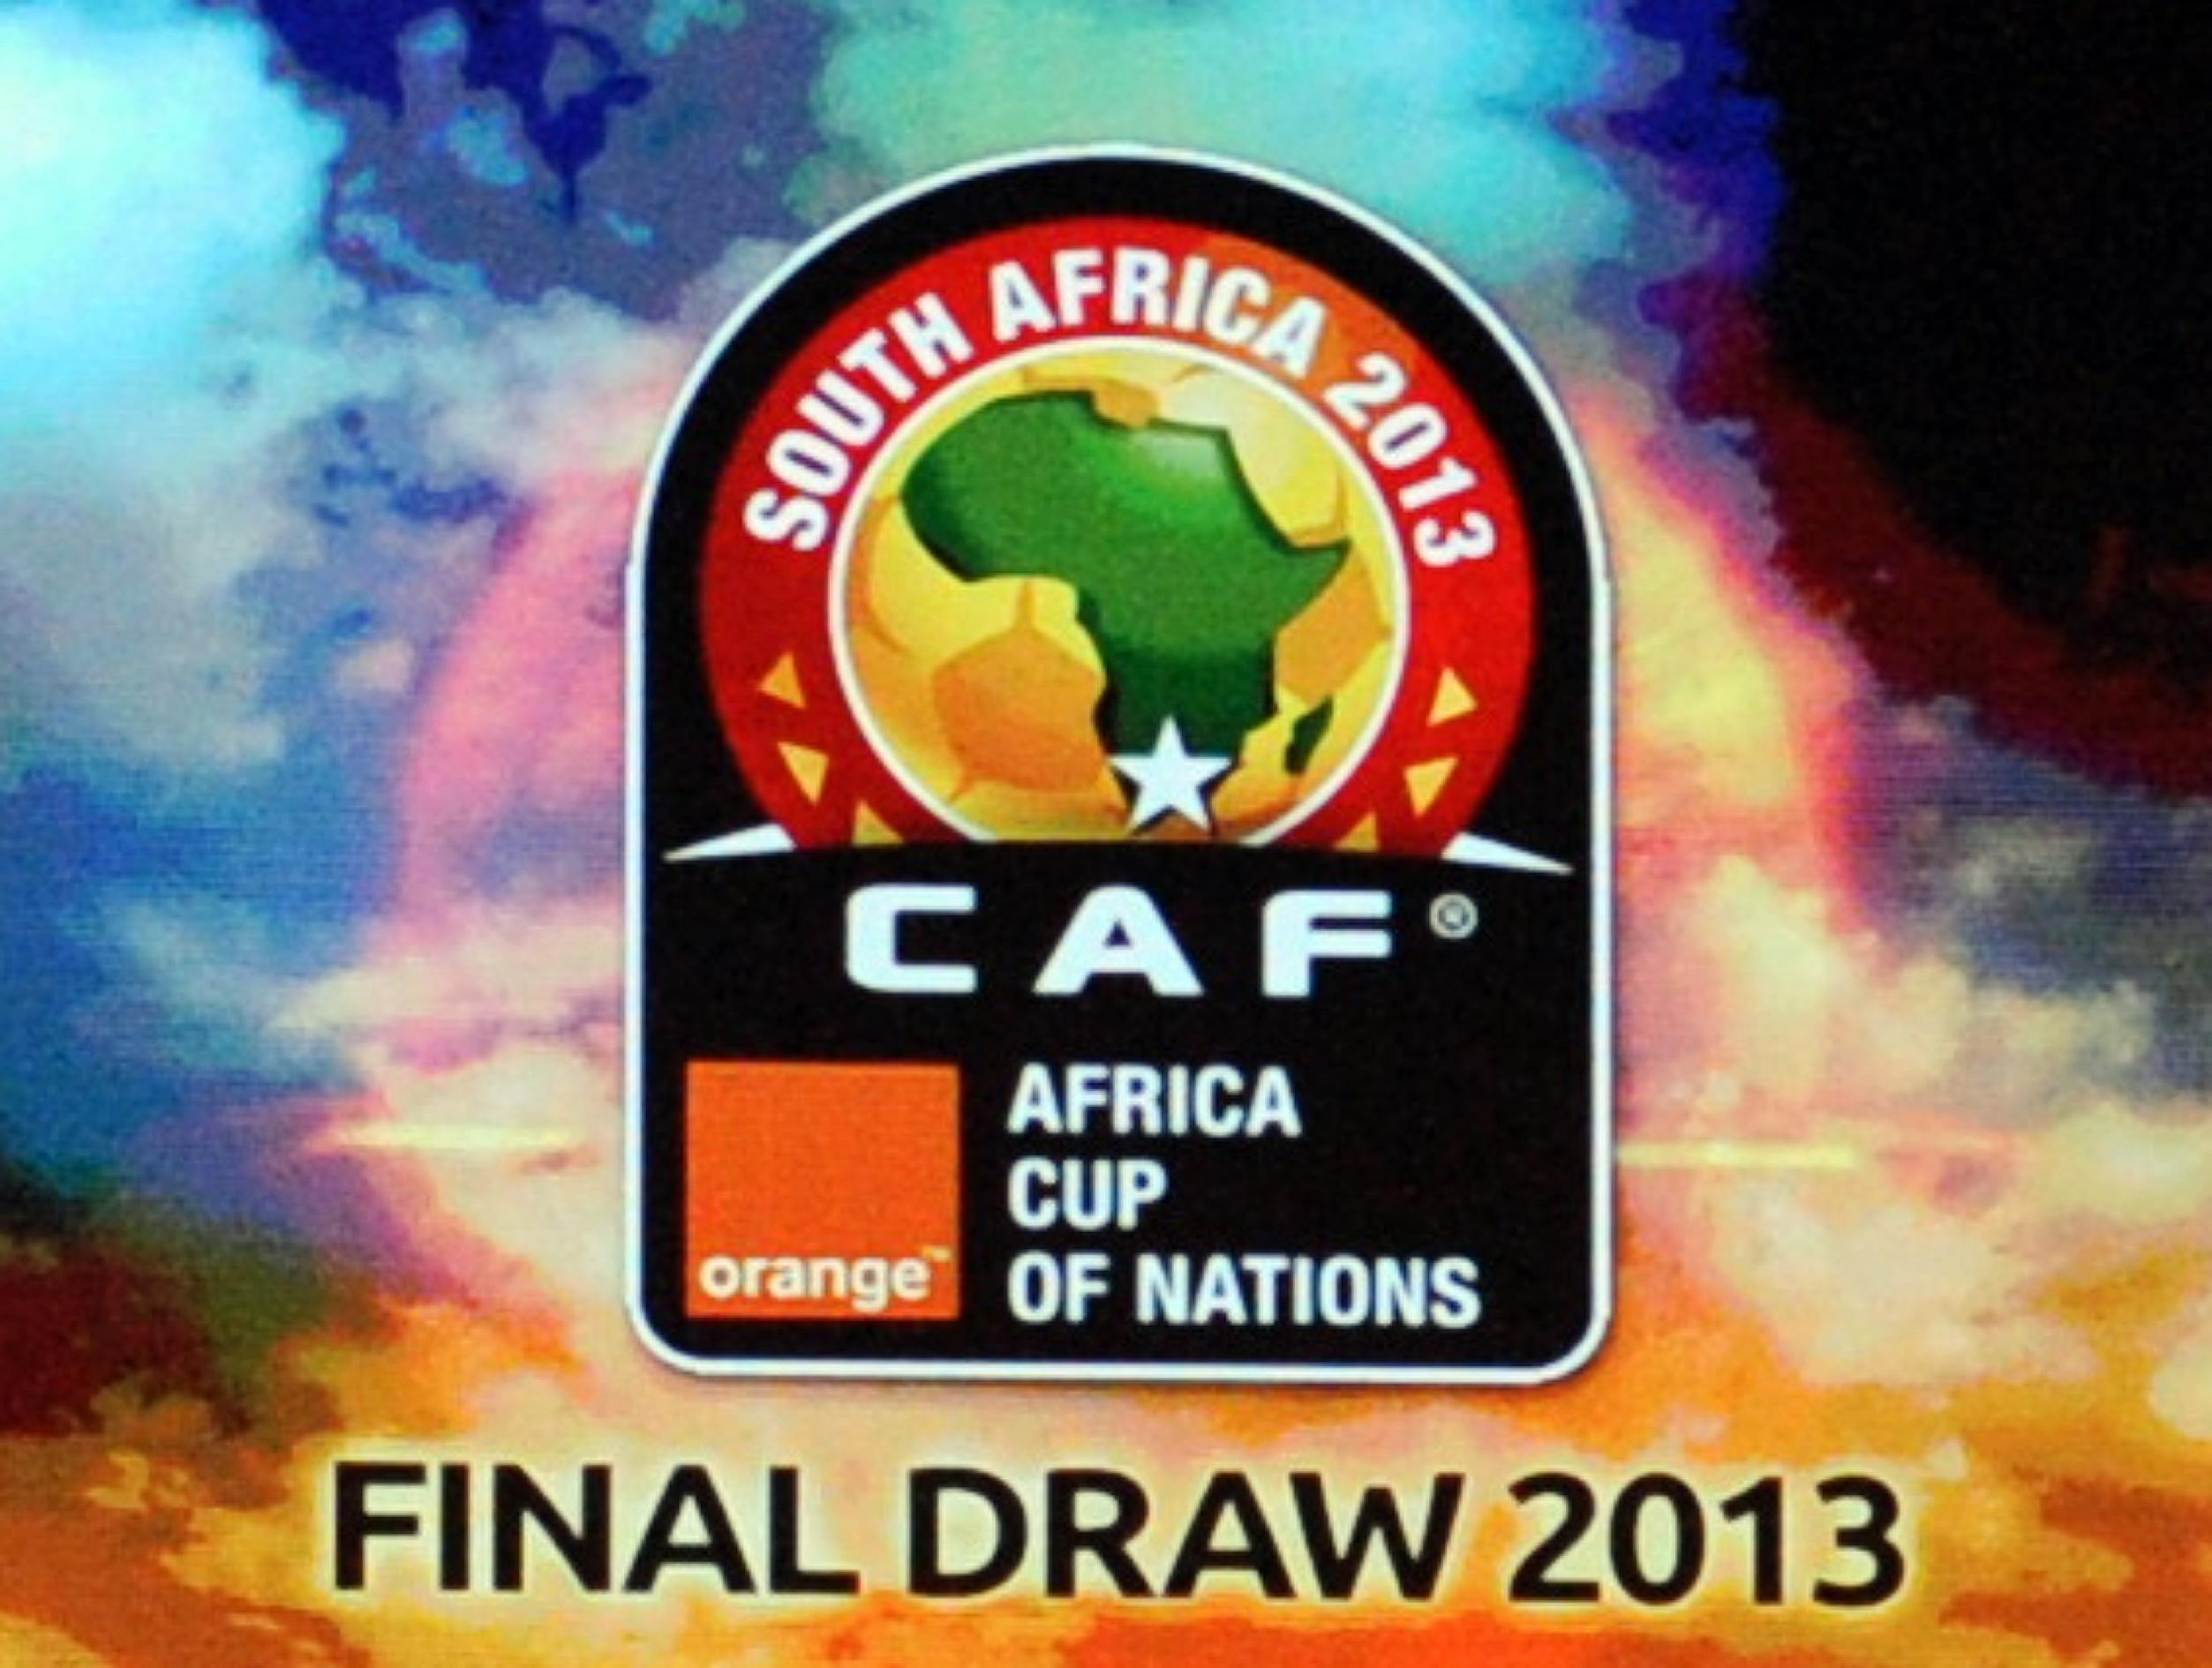 Football: 2023 Africa Cup of Nations dates to change